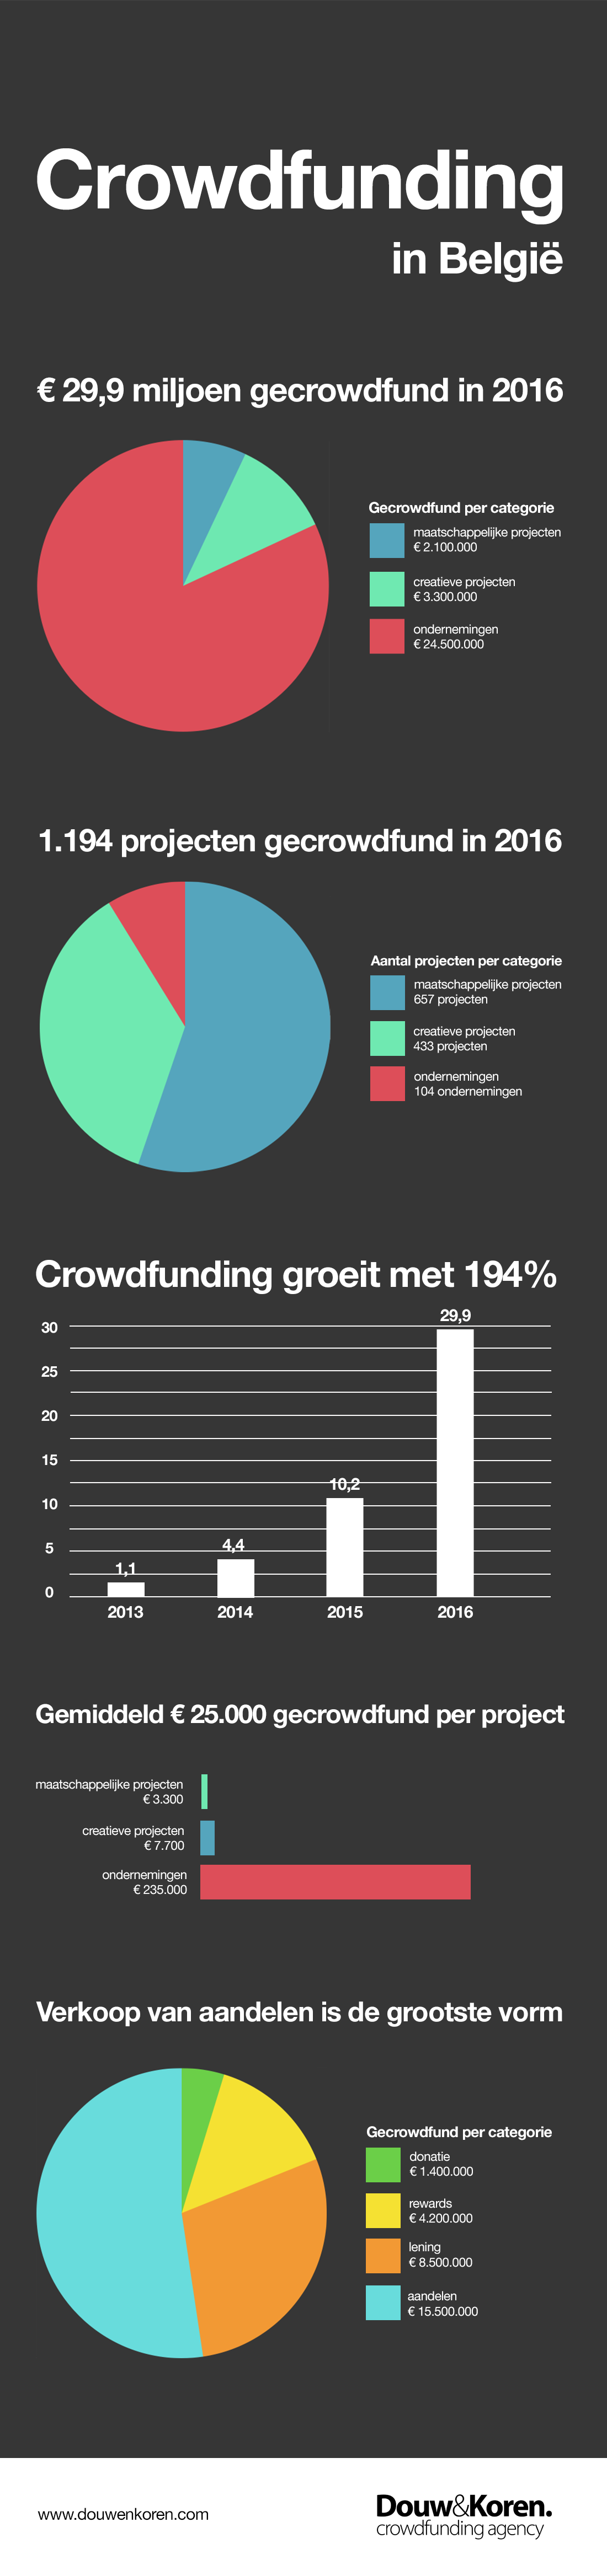 Infographic Crowdfunding in België 2016